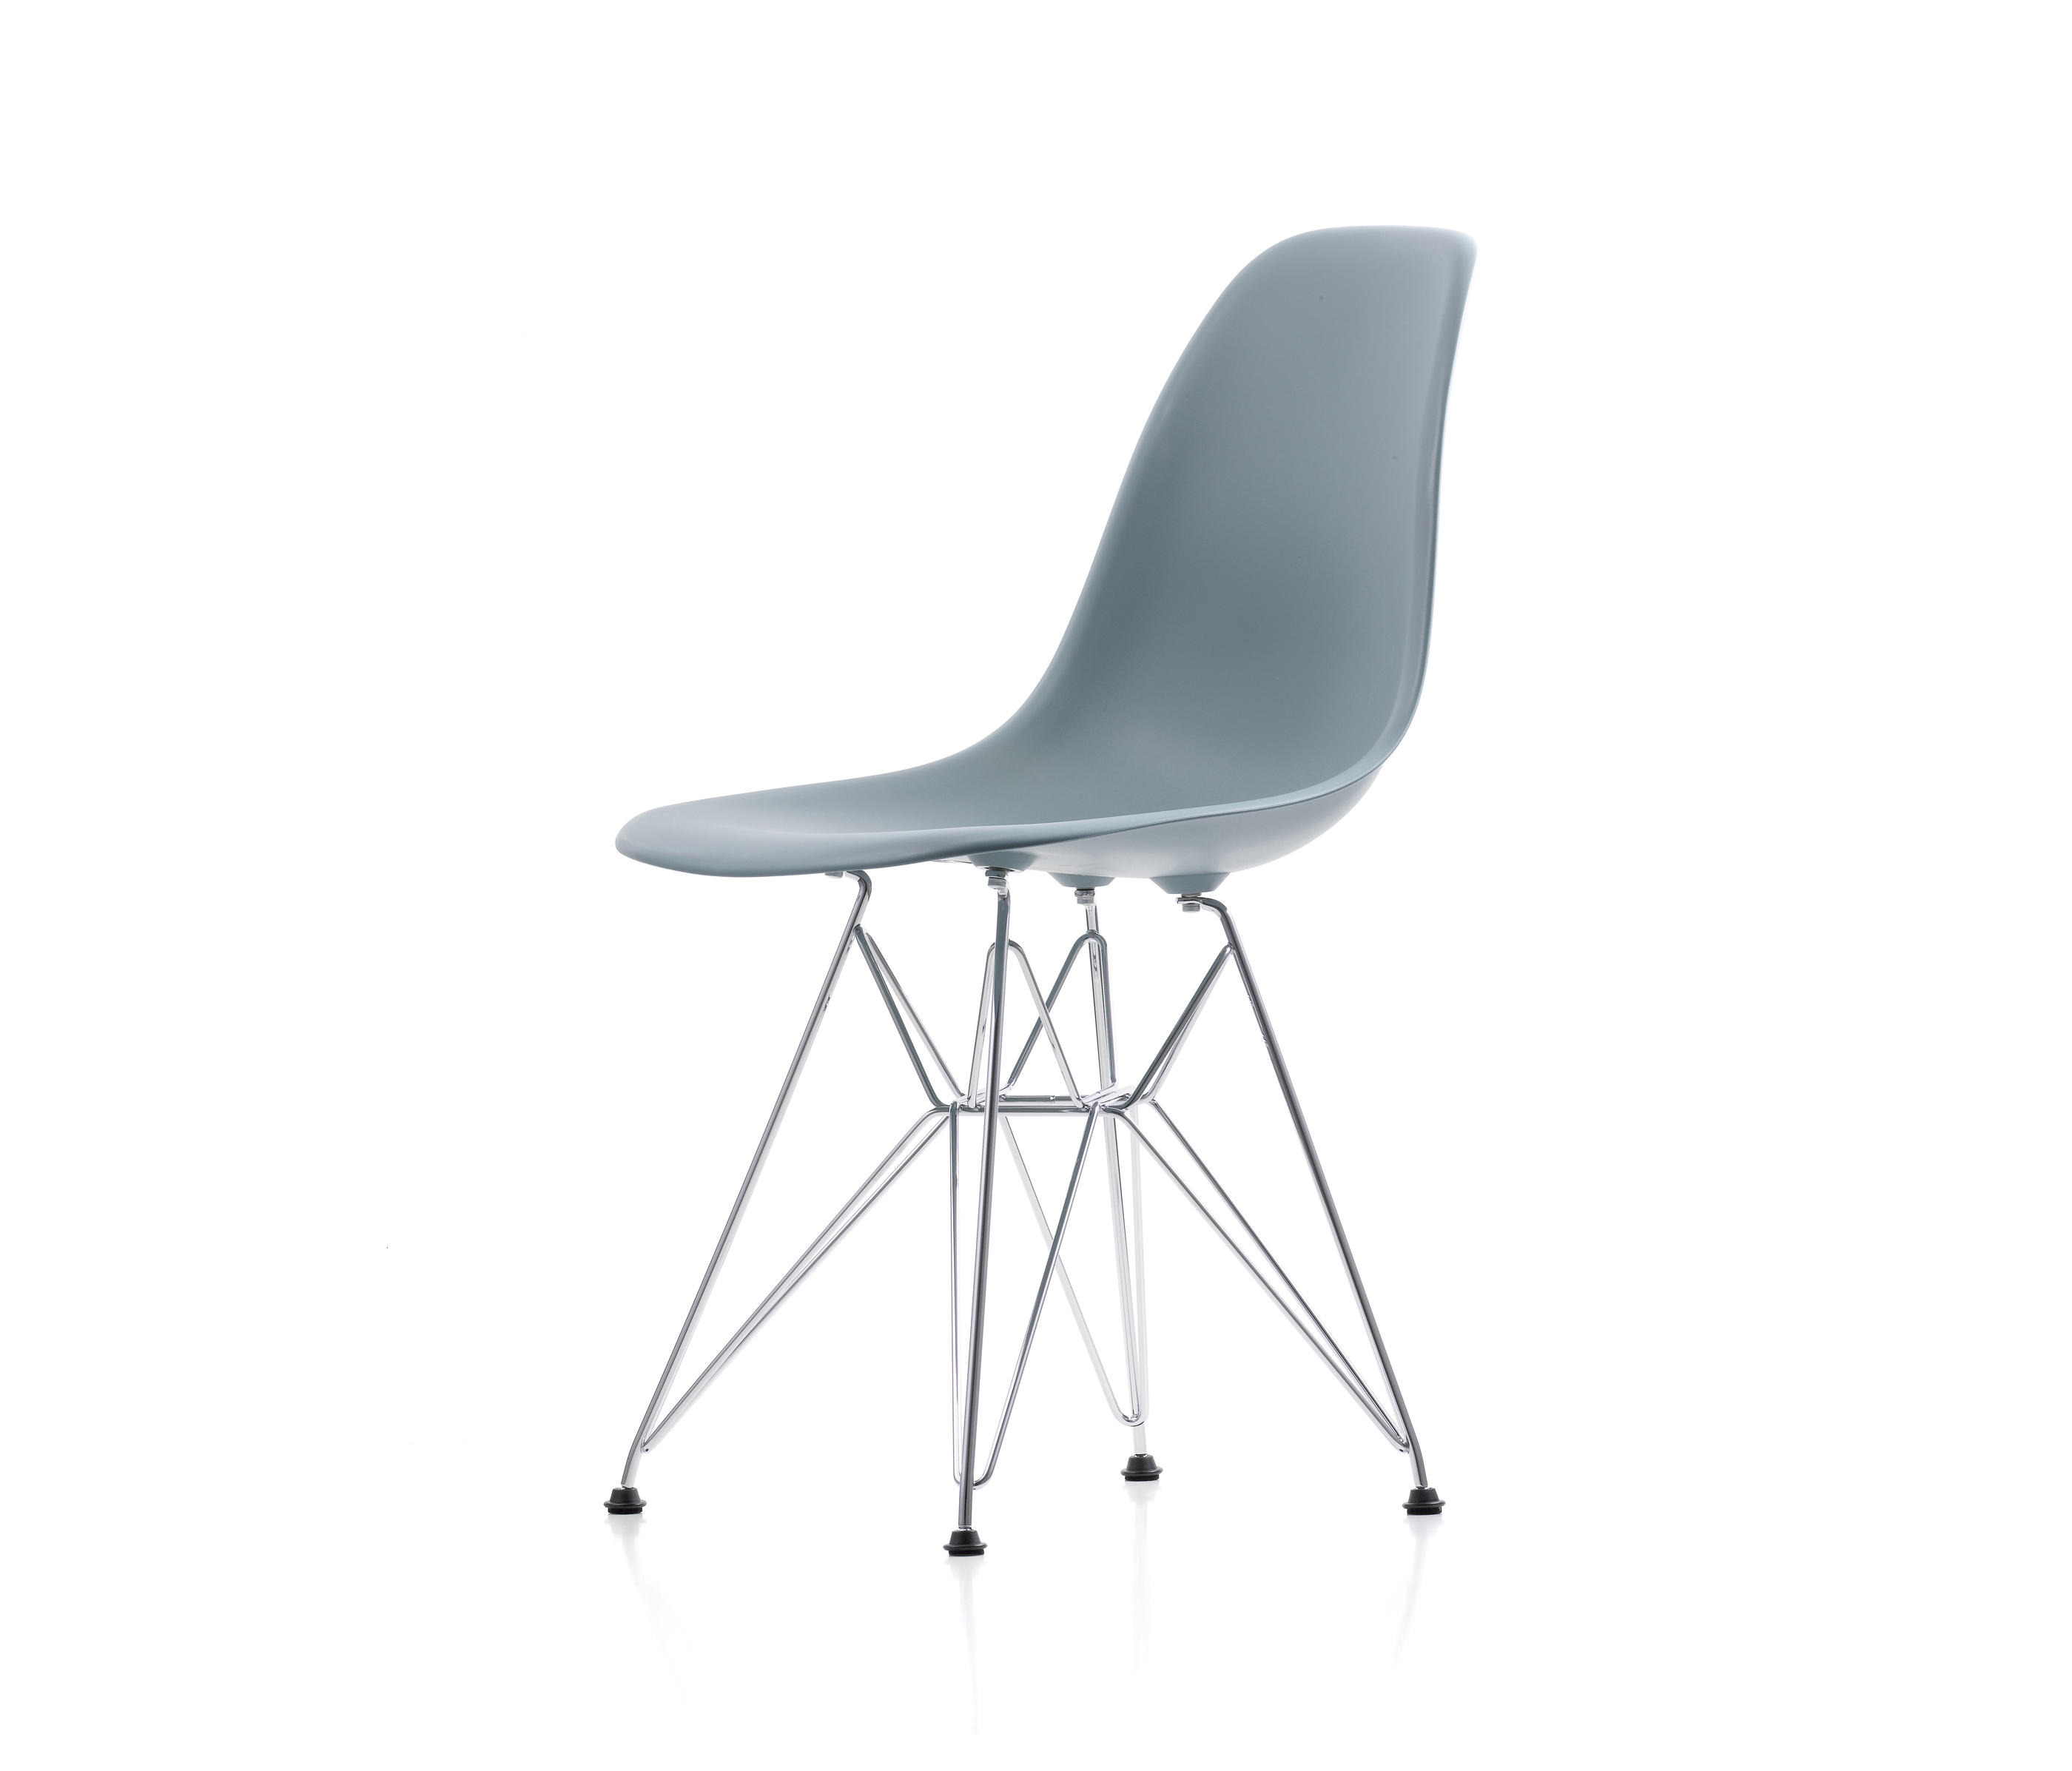 Vitra Eames Side Chair Eames Plastic Side Chair Dsr Chairs From Vitra Architonic